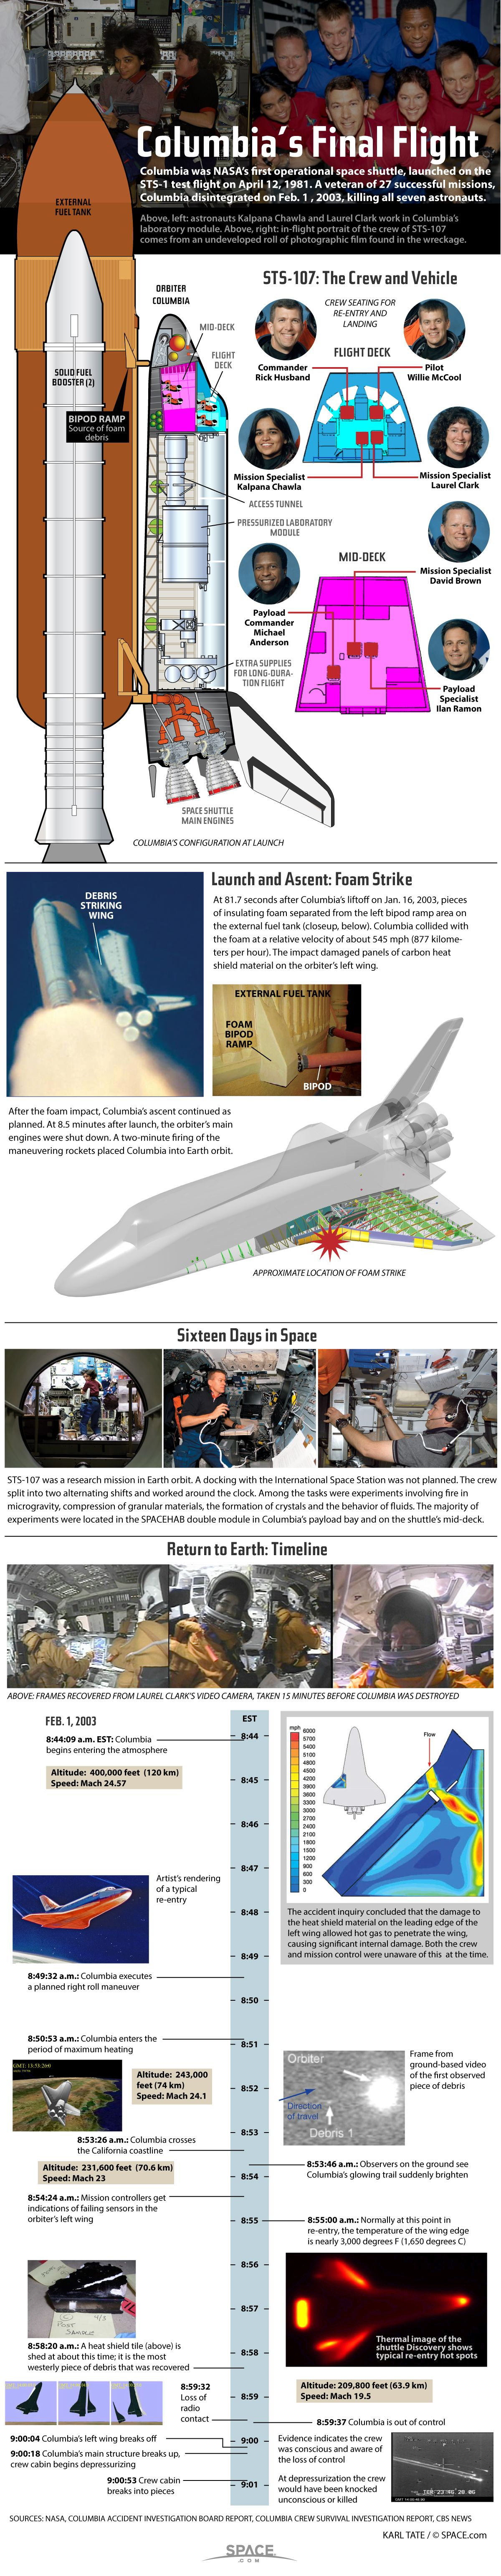 Columbia Space Shuttle Disaster Explained (Infographic ...